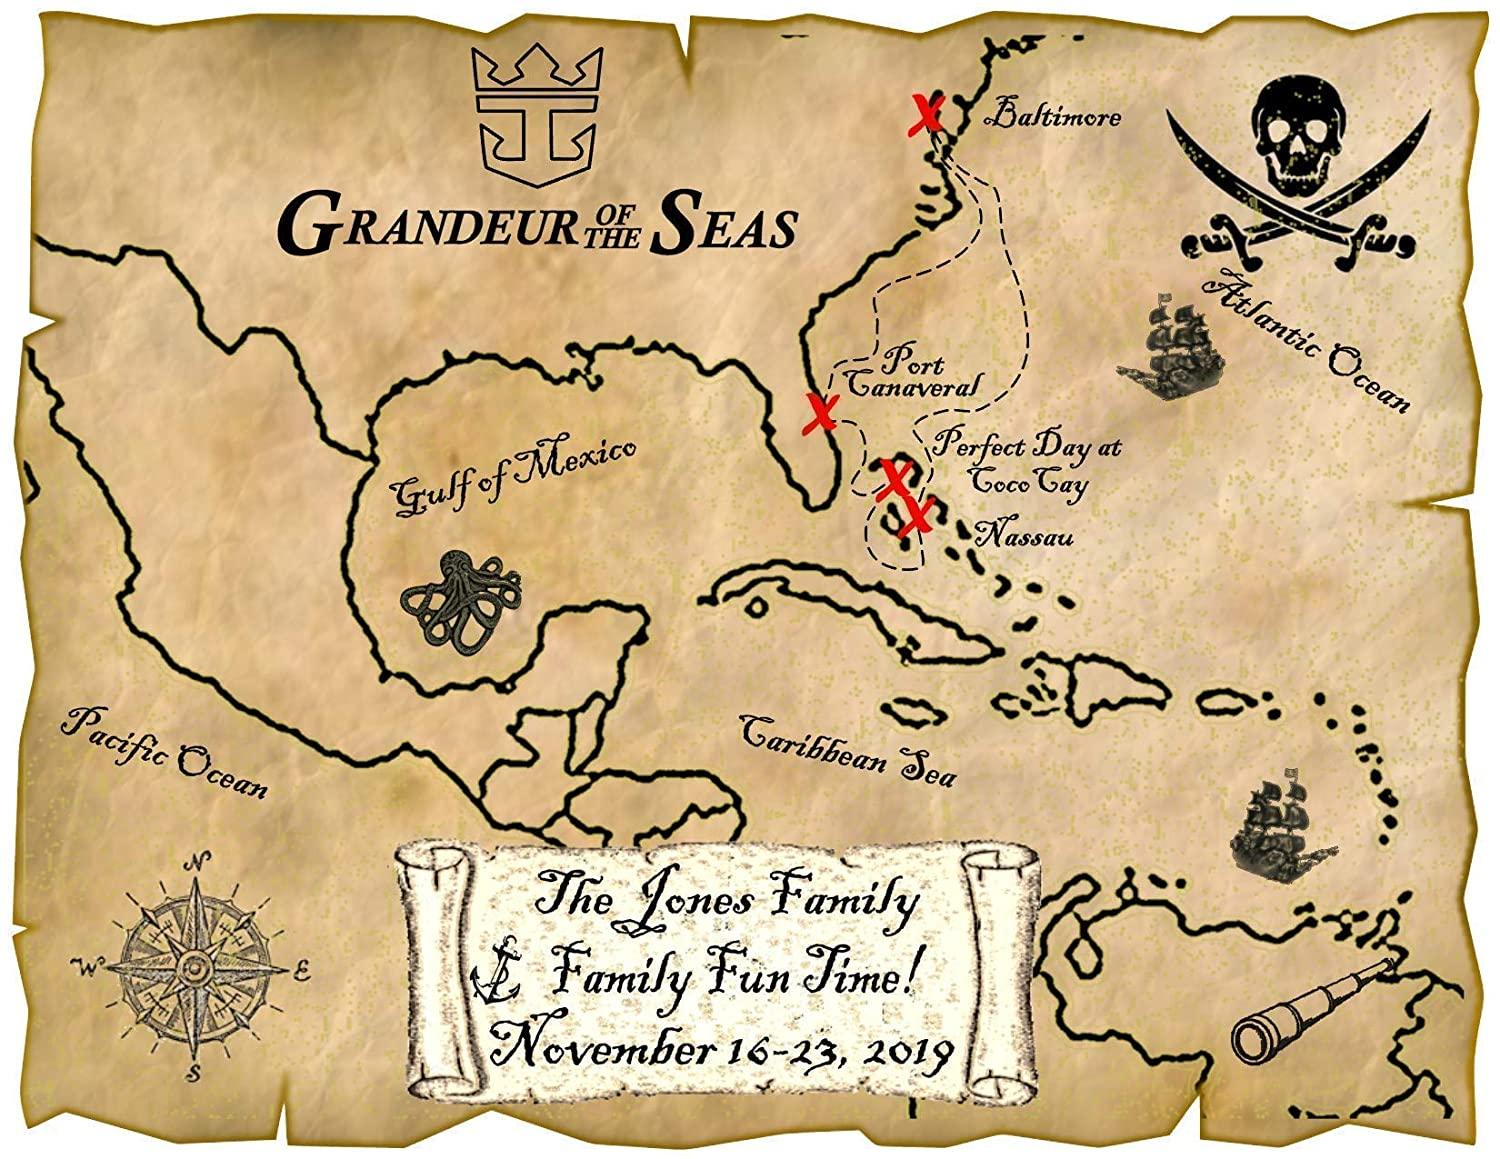 Amazon.com: Caribbean Pirate Map Magnet-all cruiselines : Handmade Products